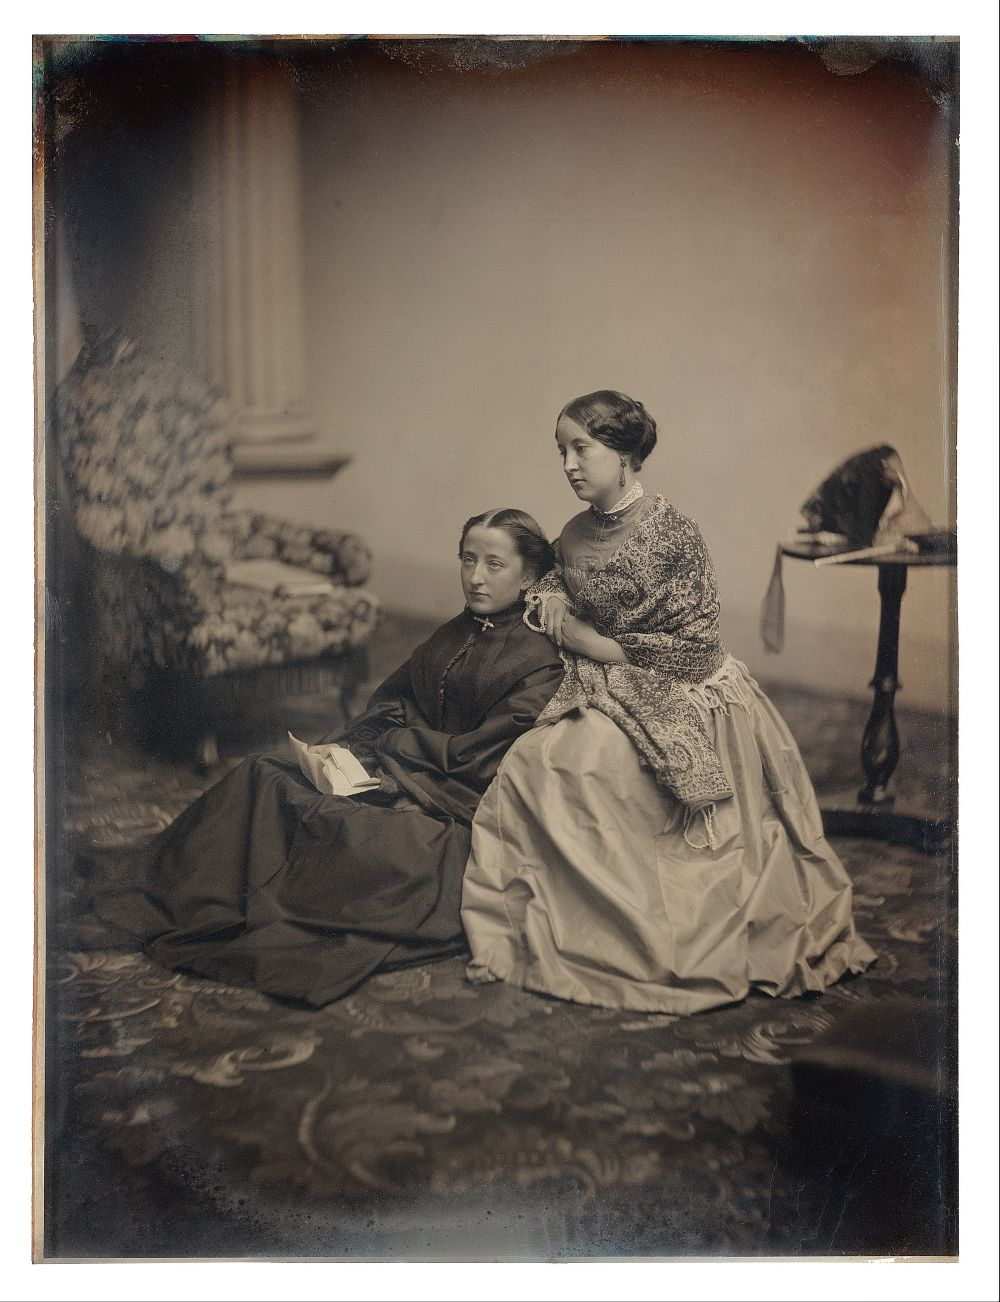 Albert Sands Southworth and Josiah Johnson Hawes - The Letter, circa 1850, Medium Daguerreotype